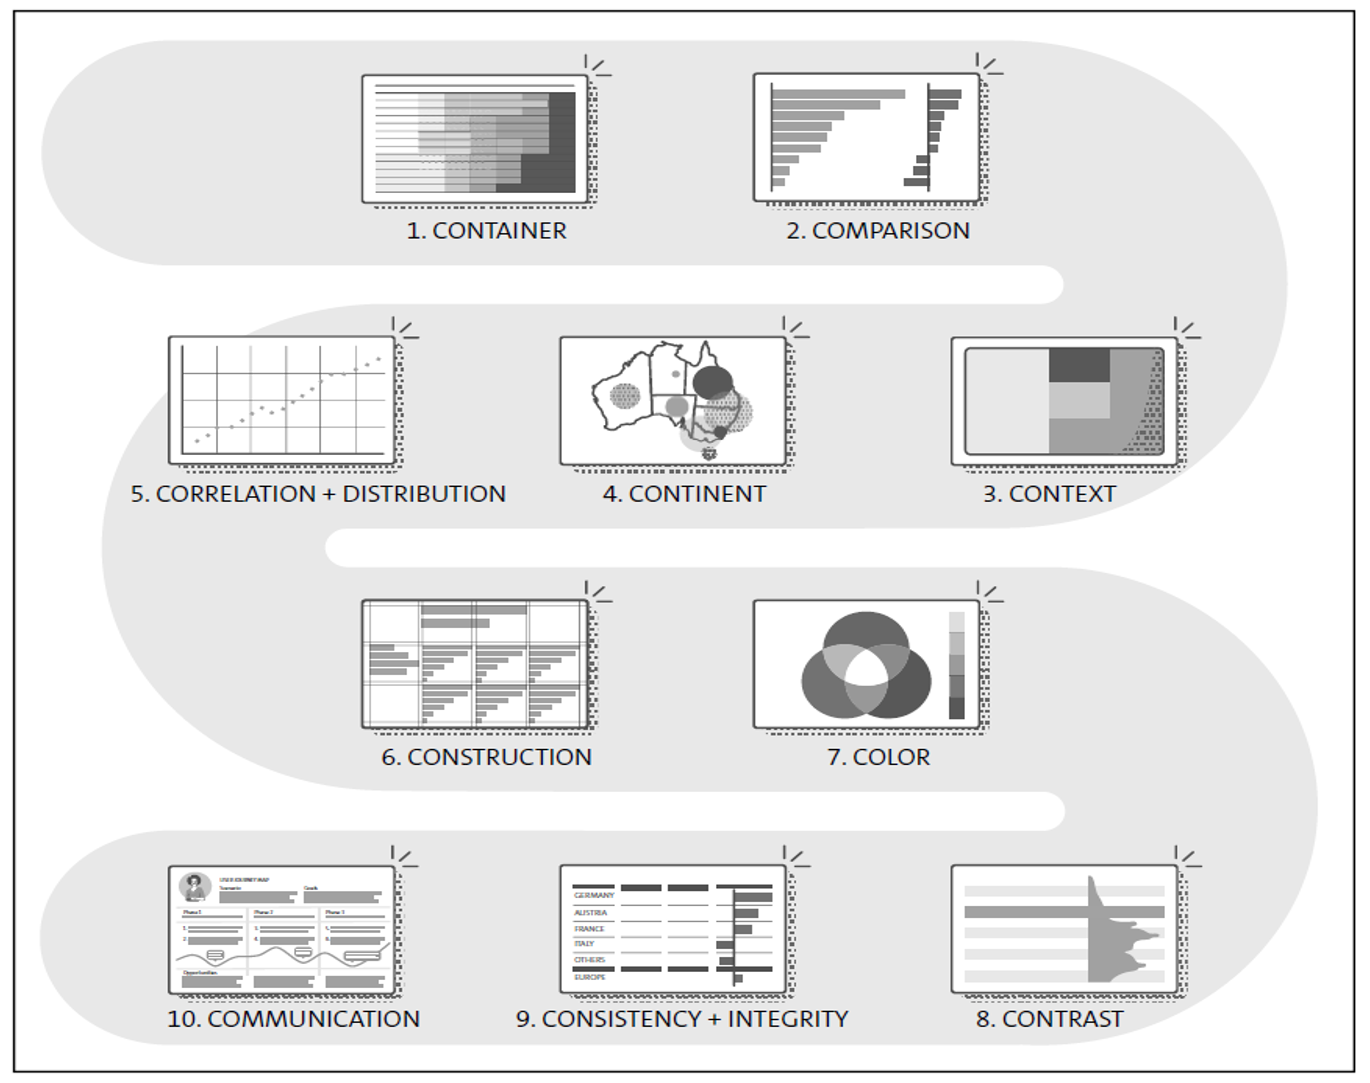 The 10 Golden Rules for Data-Driven Design to Foster Confident Decisions